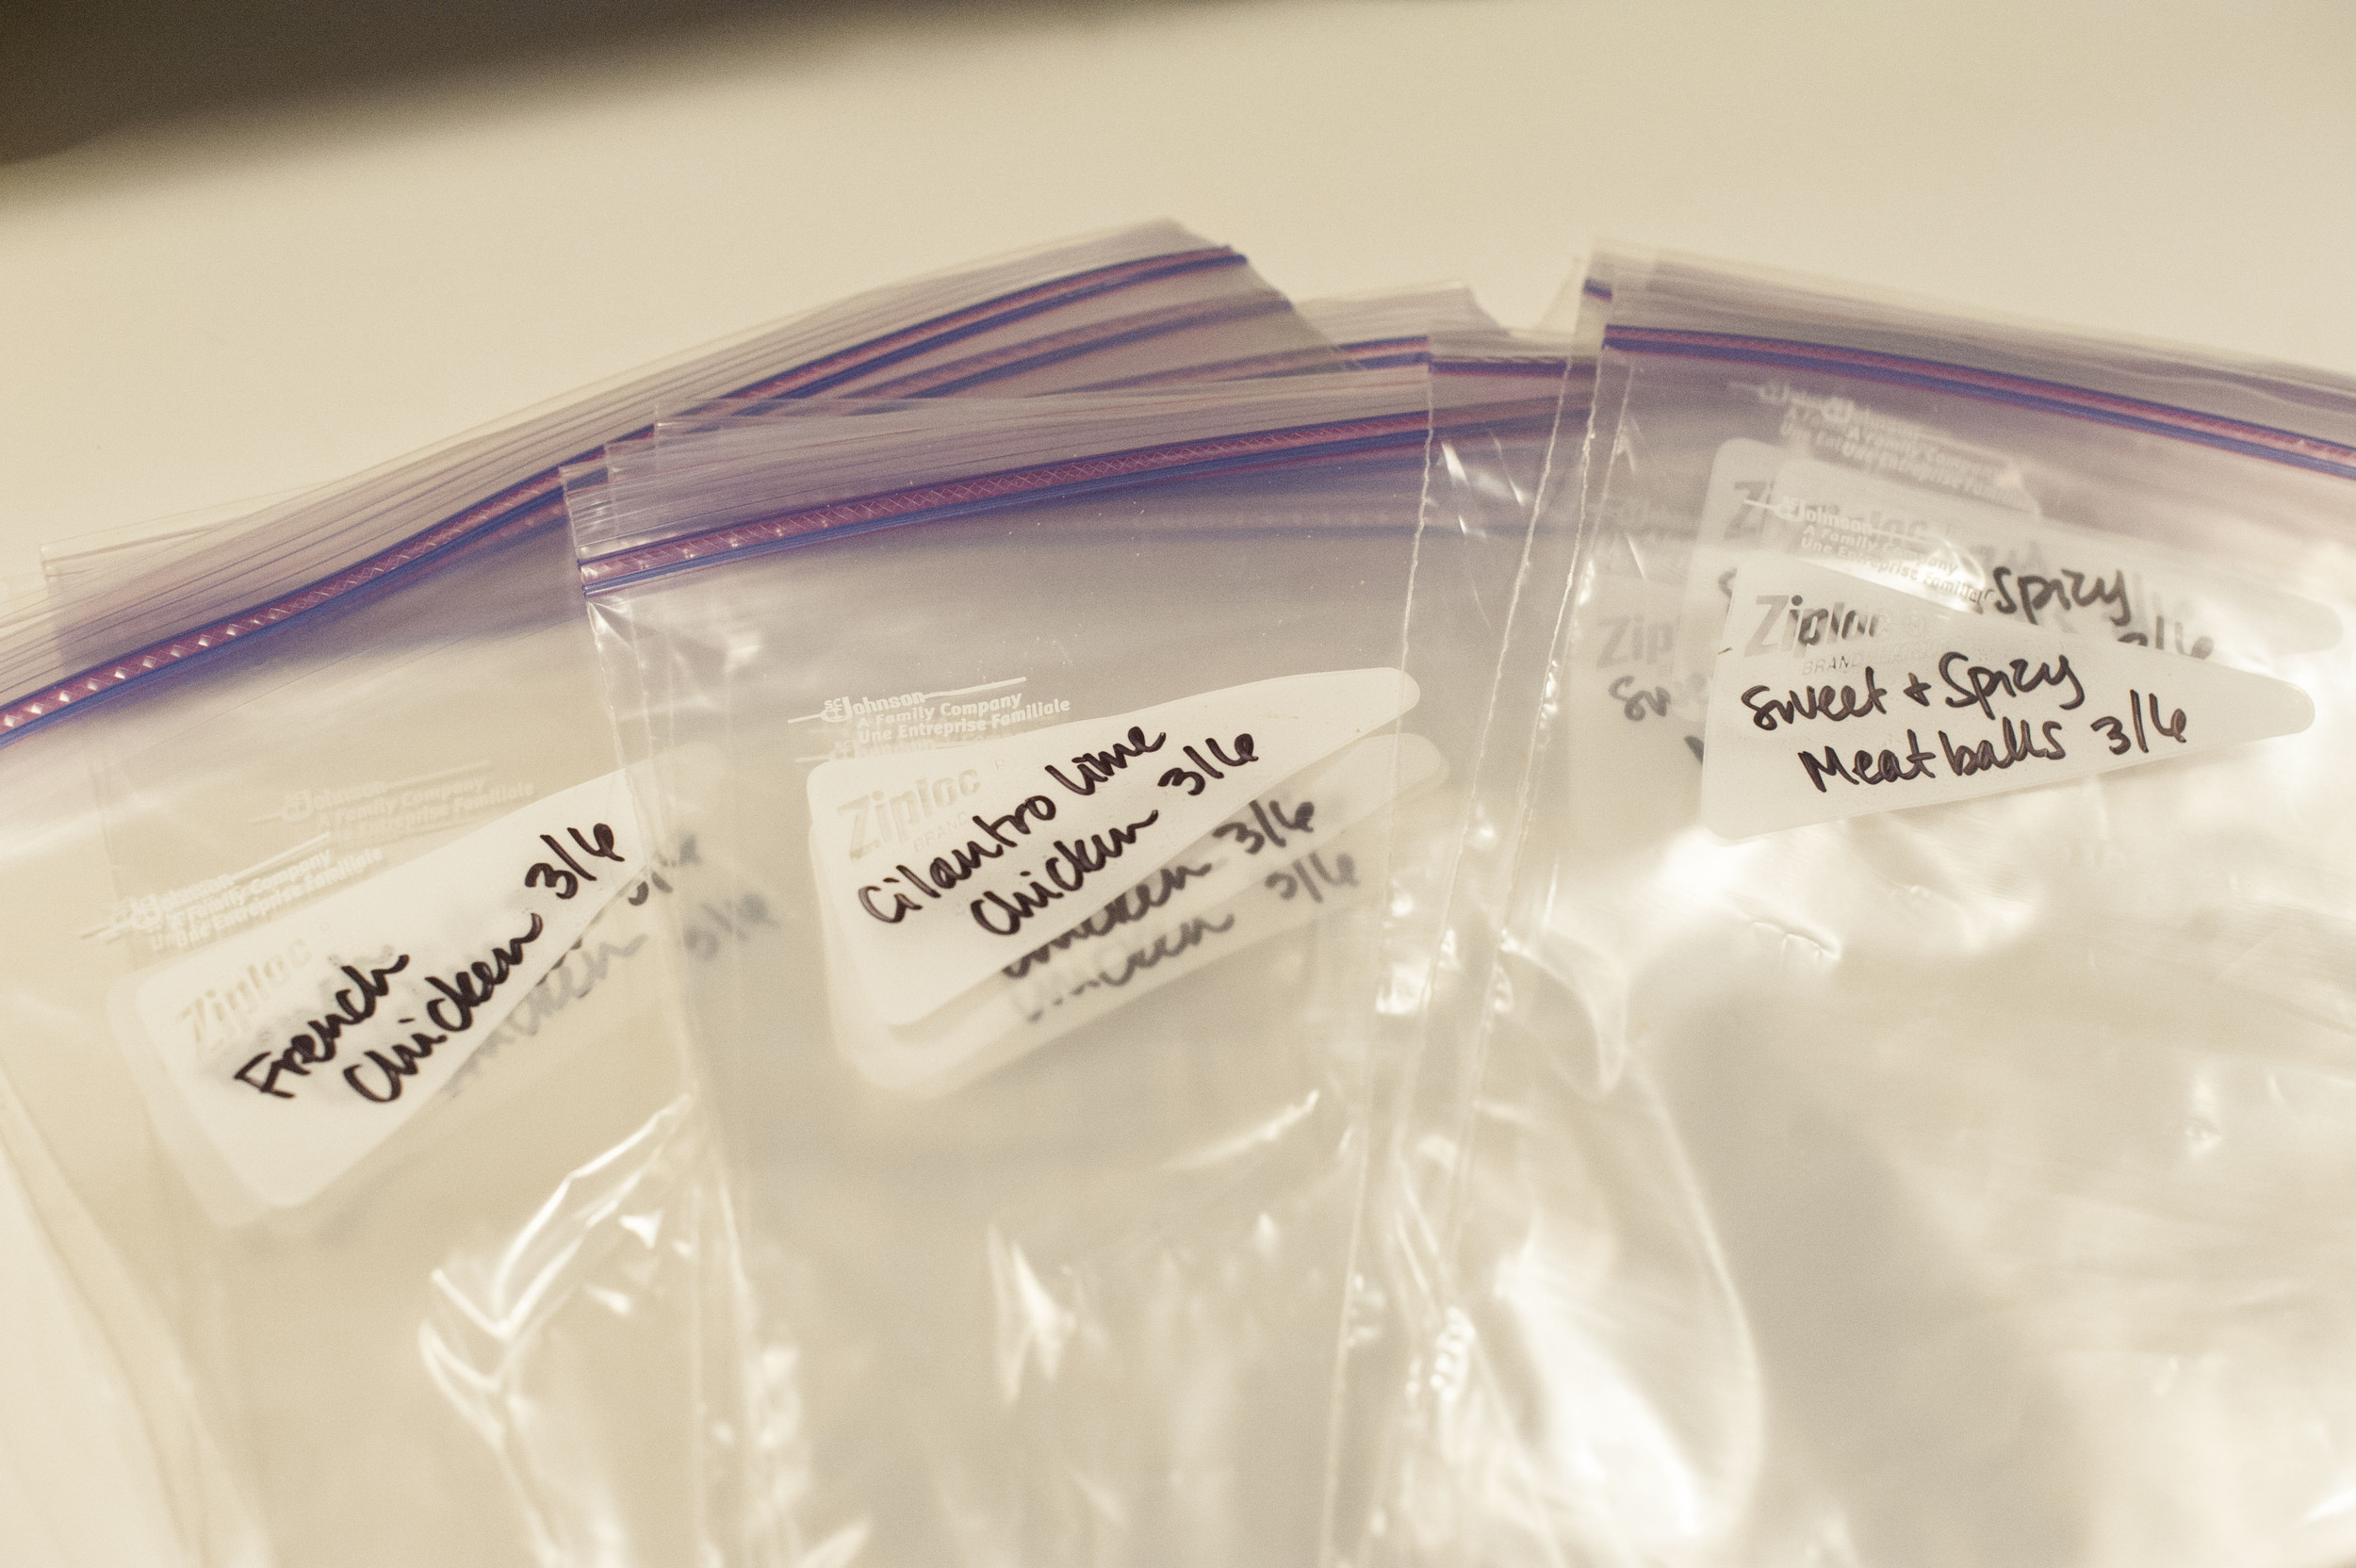 Most crock-pot recipes can be packaged in Ziploc freezer bags. This is one of the easiest ways to do it!